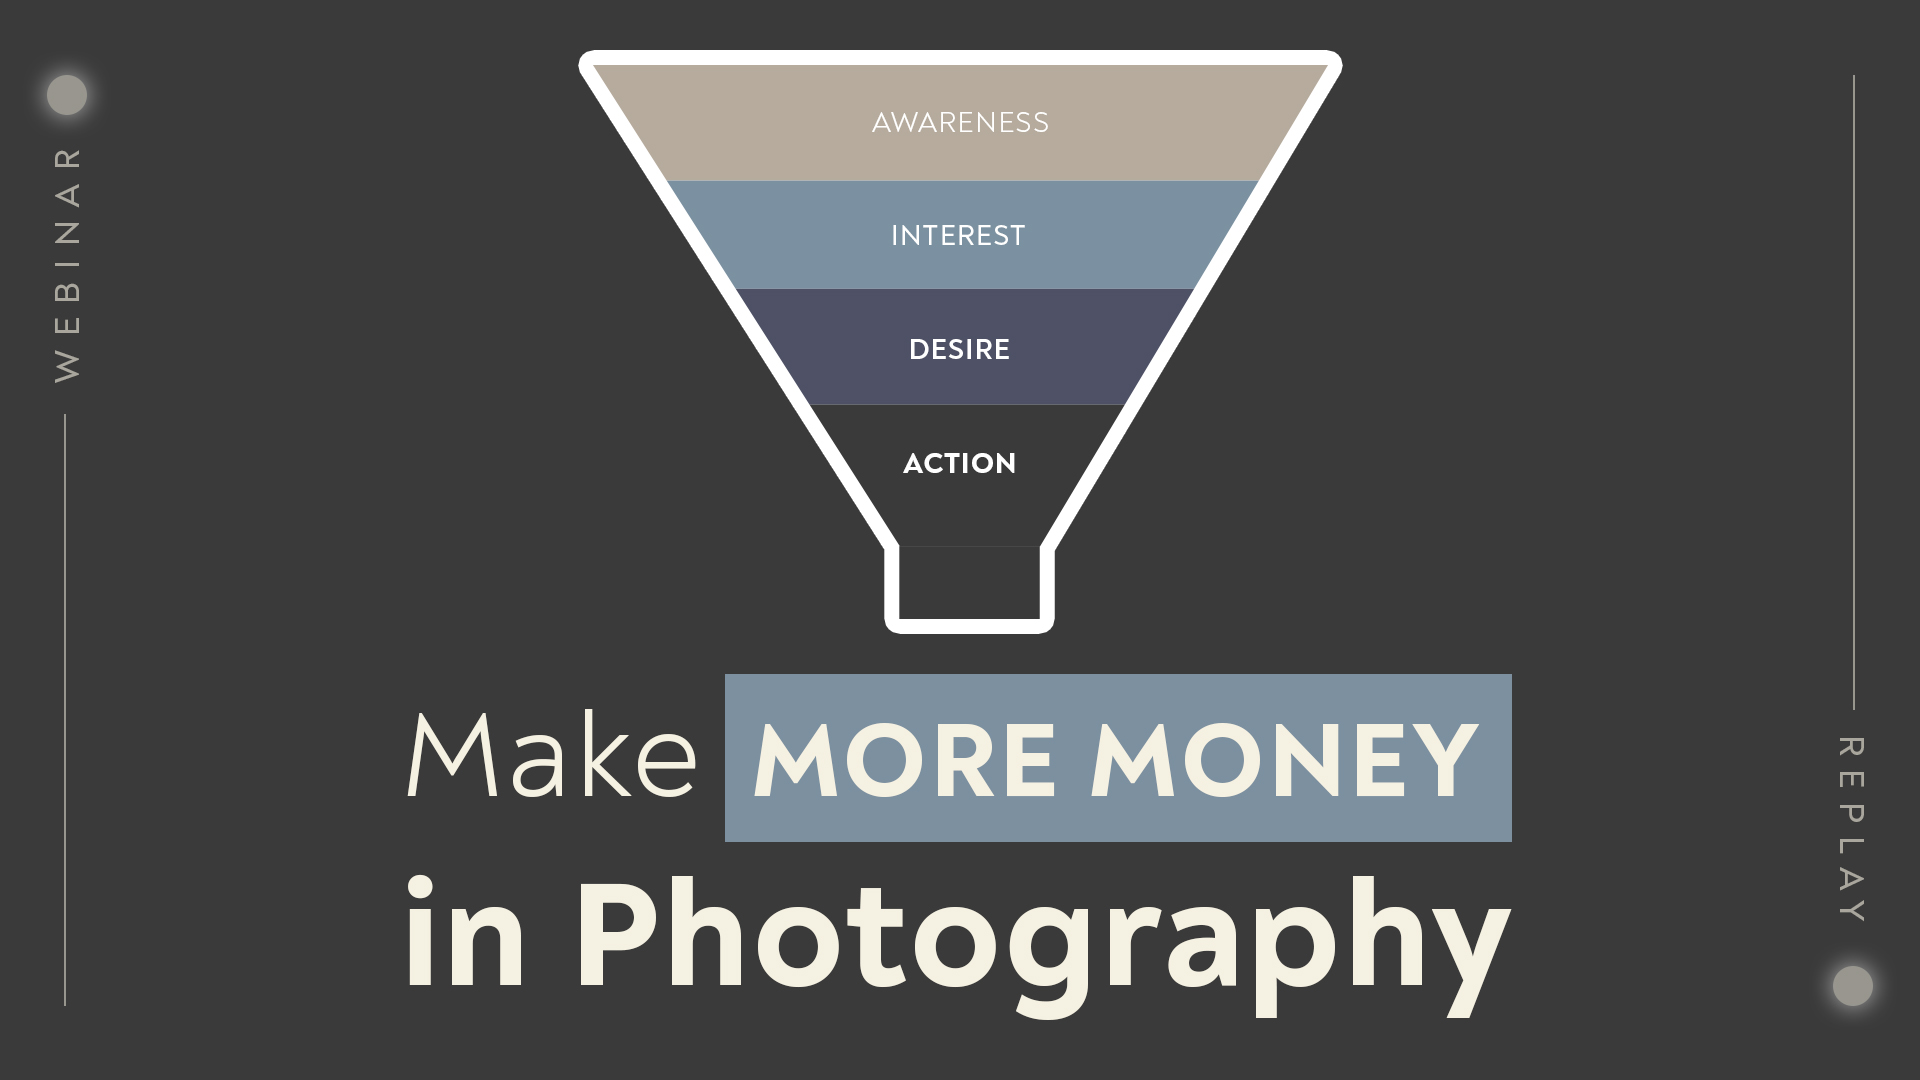 How can photographers make more money?